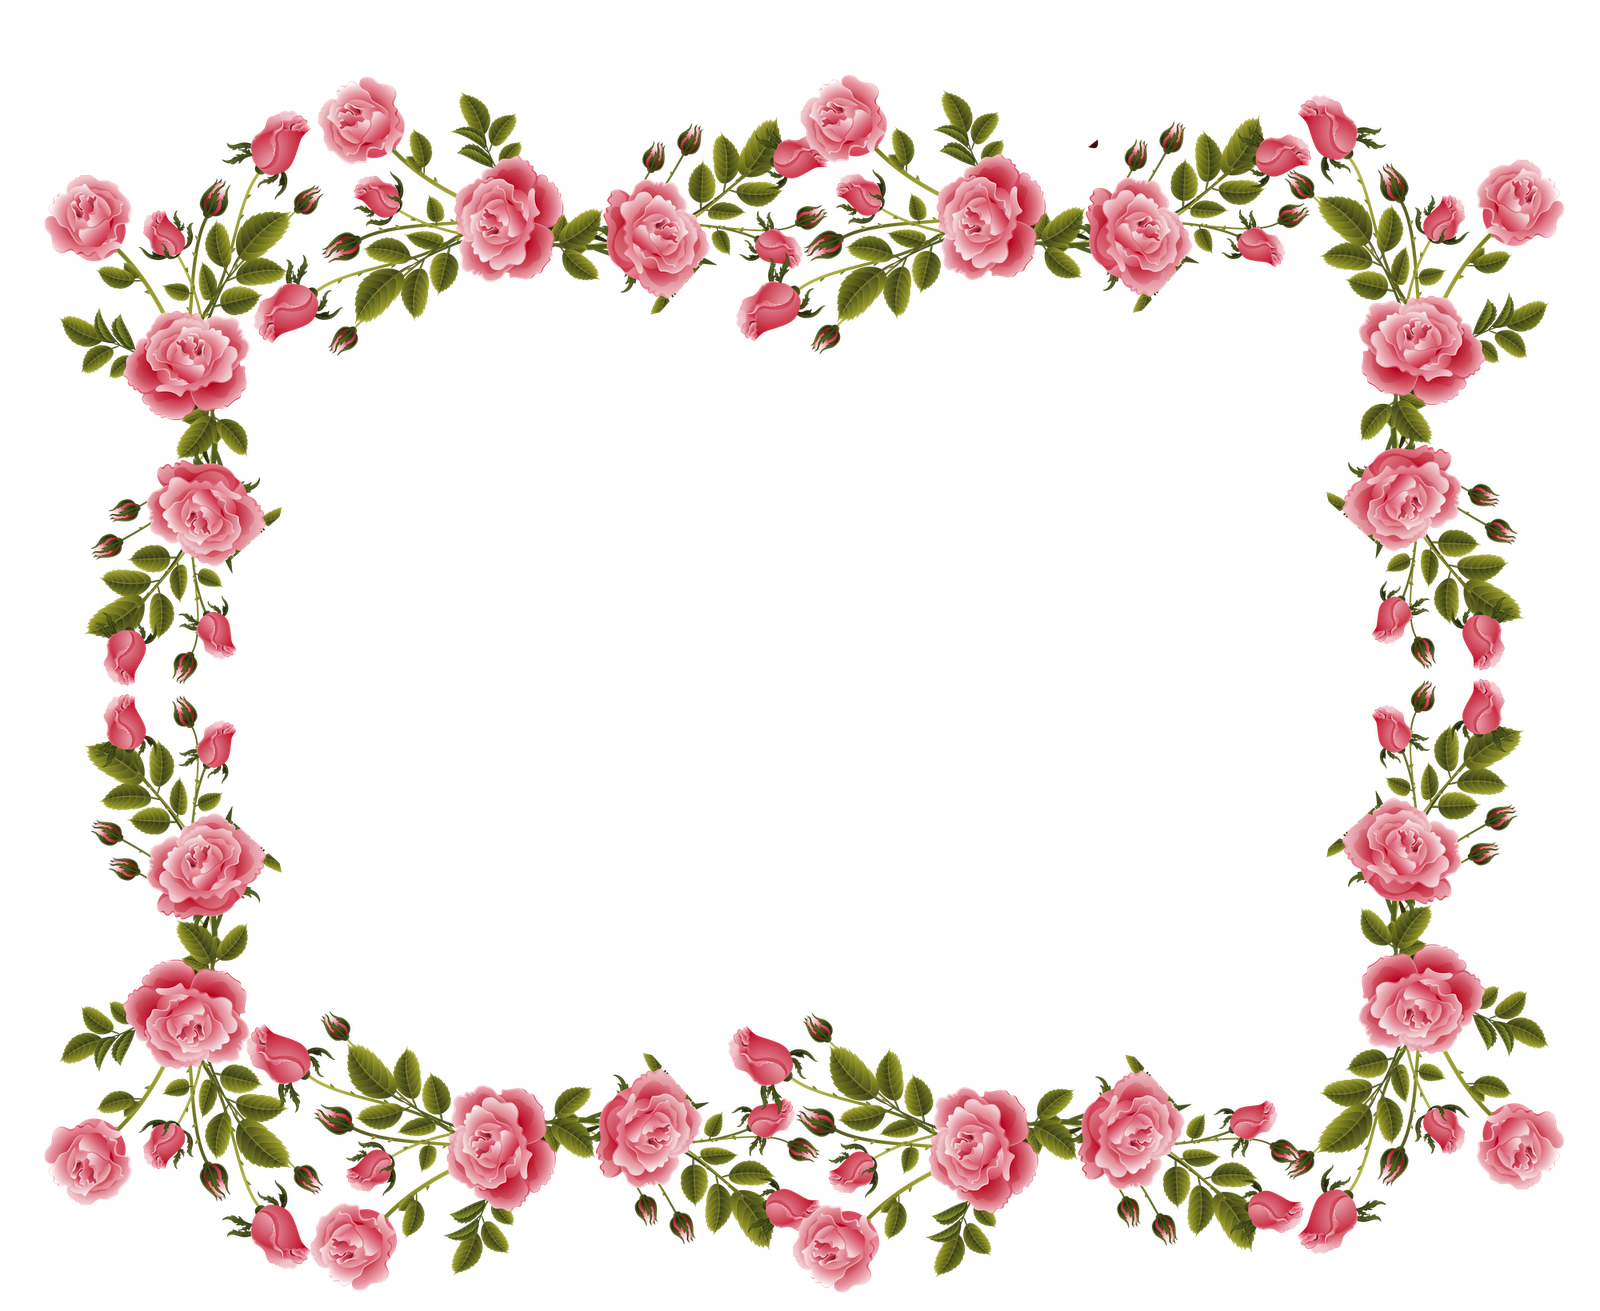 Simple flower border clipart banner royalty free stock rose border clipart - Jaxstorm.realverse.us | Clip art for ... banner royalty free stock